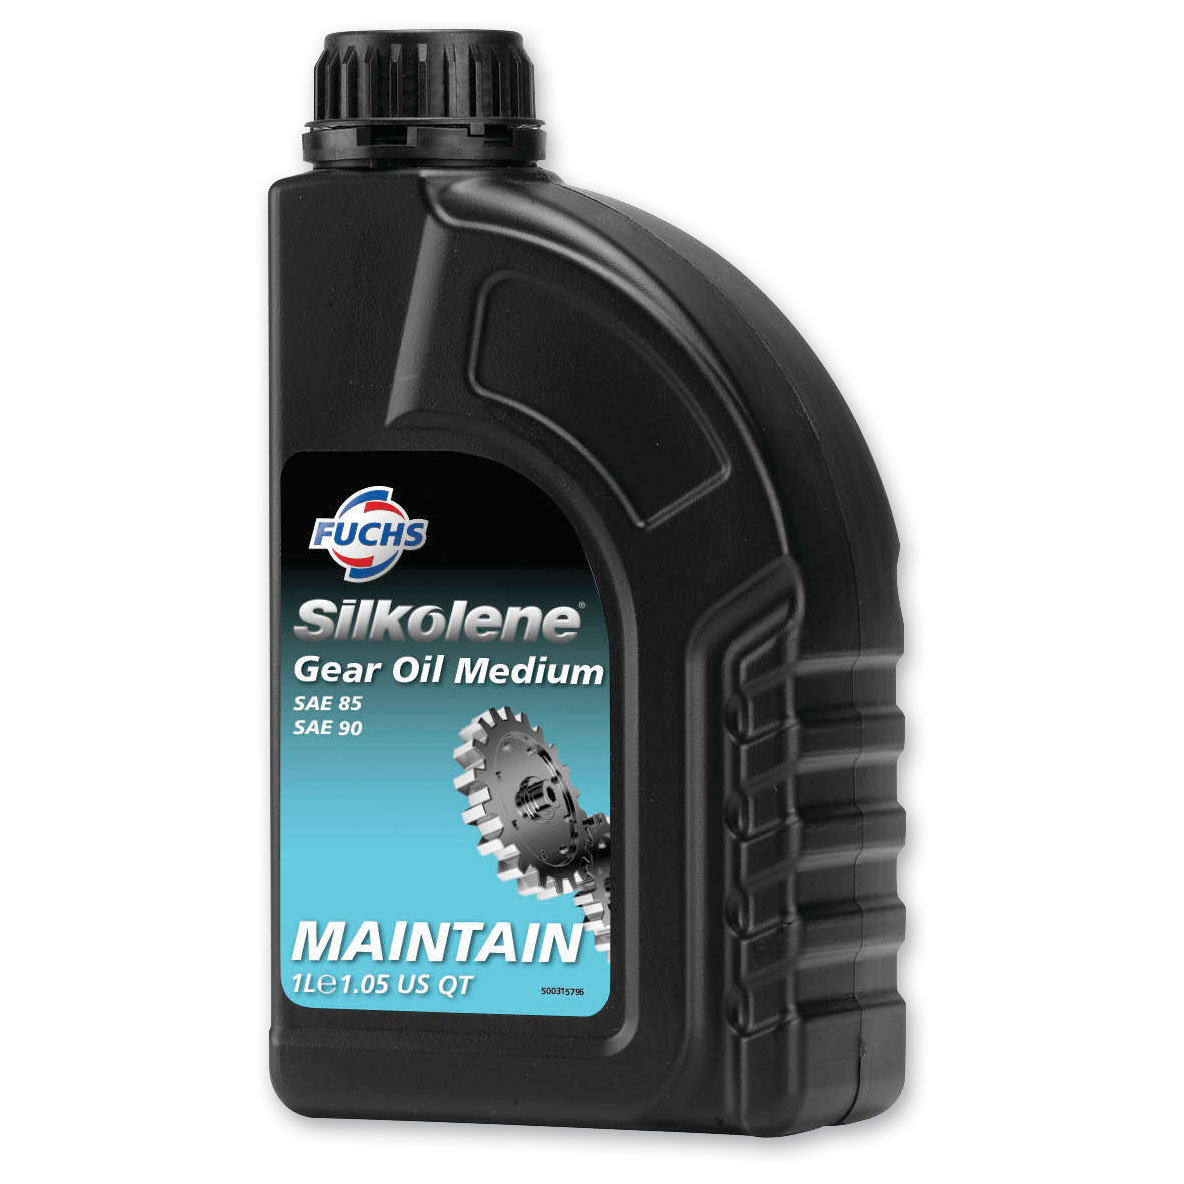 Silkolene Medium Gear Oil Liter